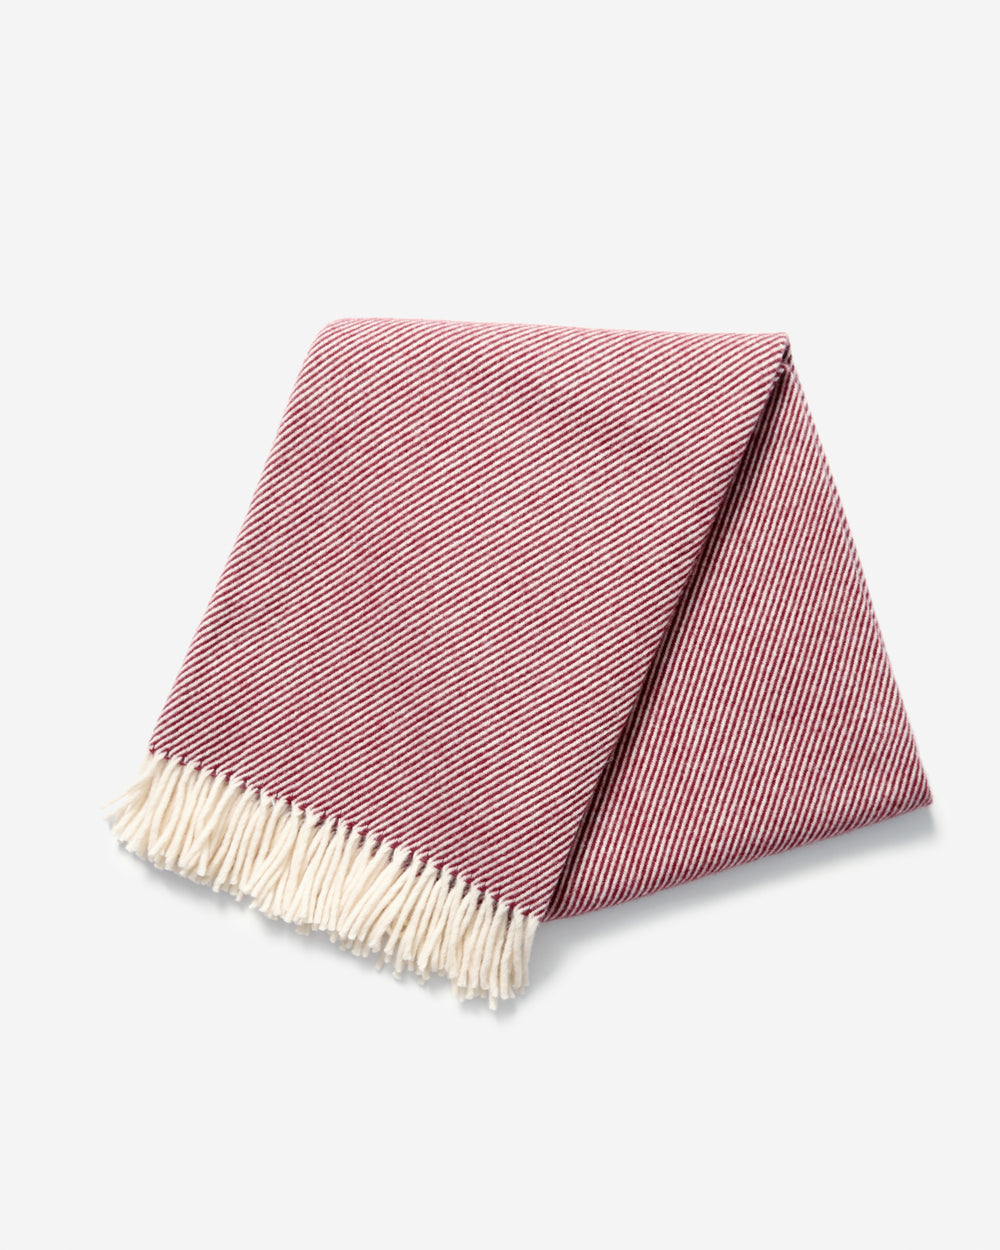 Luxurious Merino Wool Throw